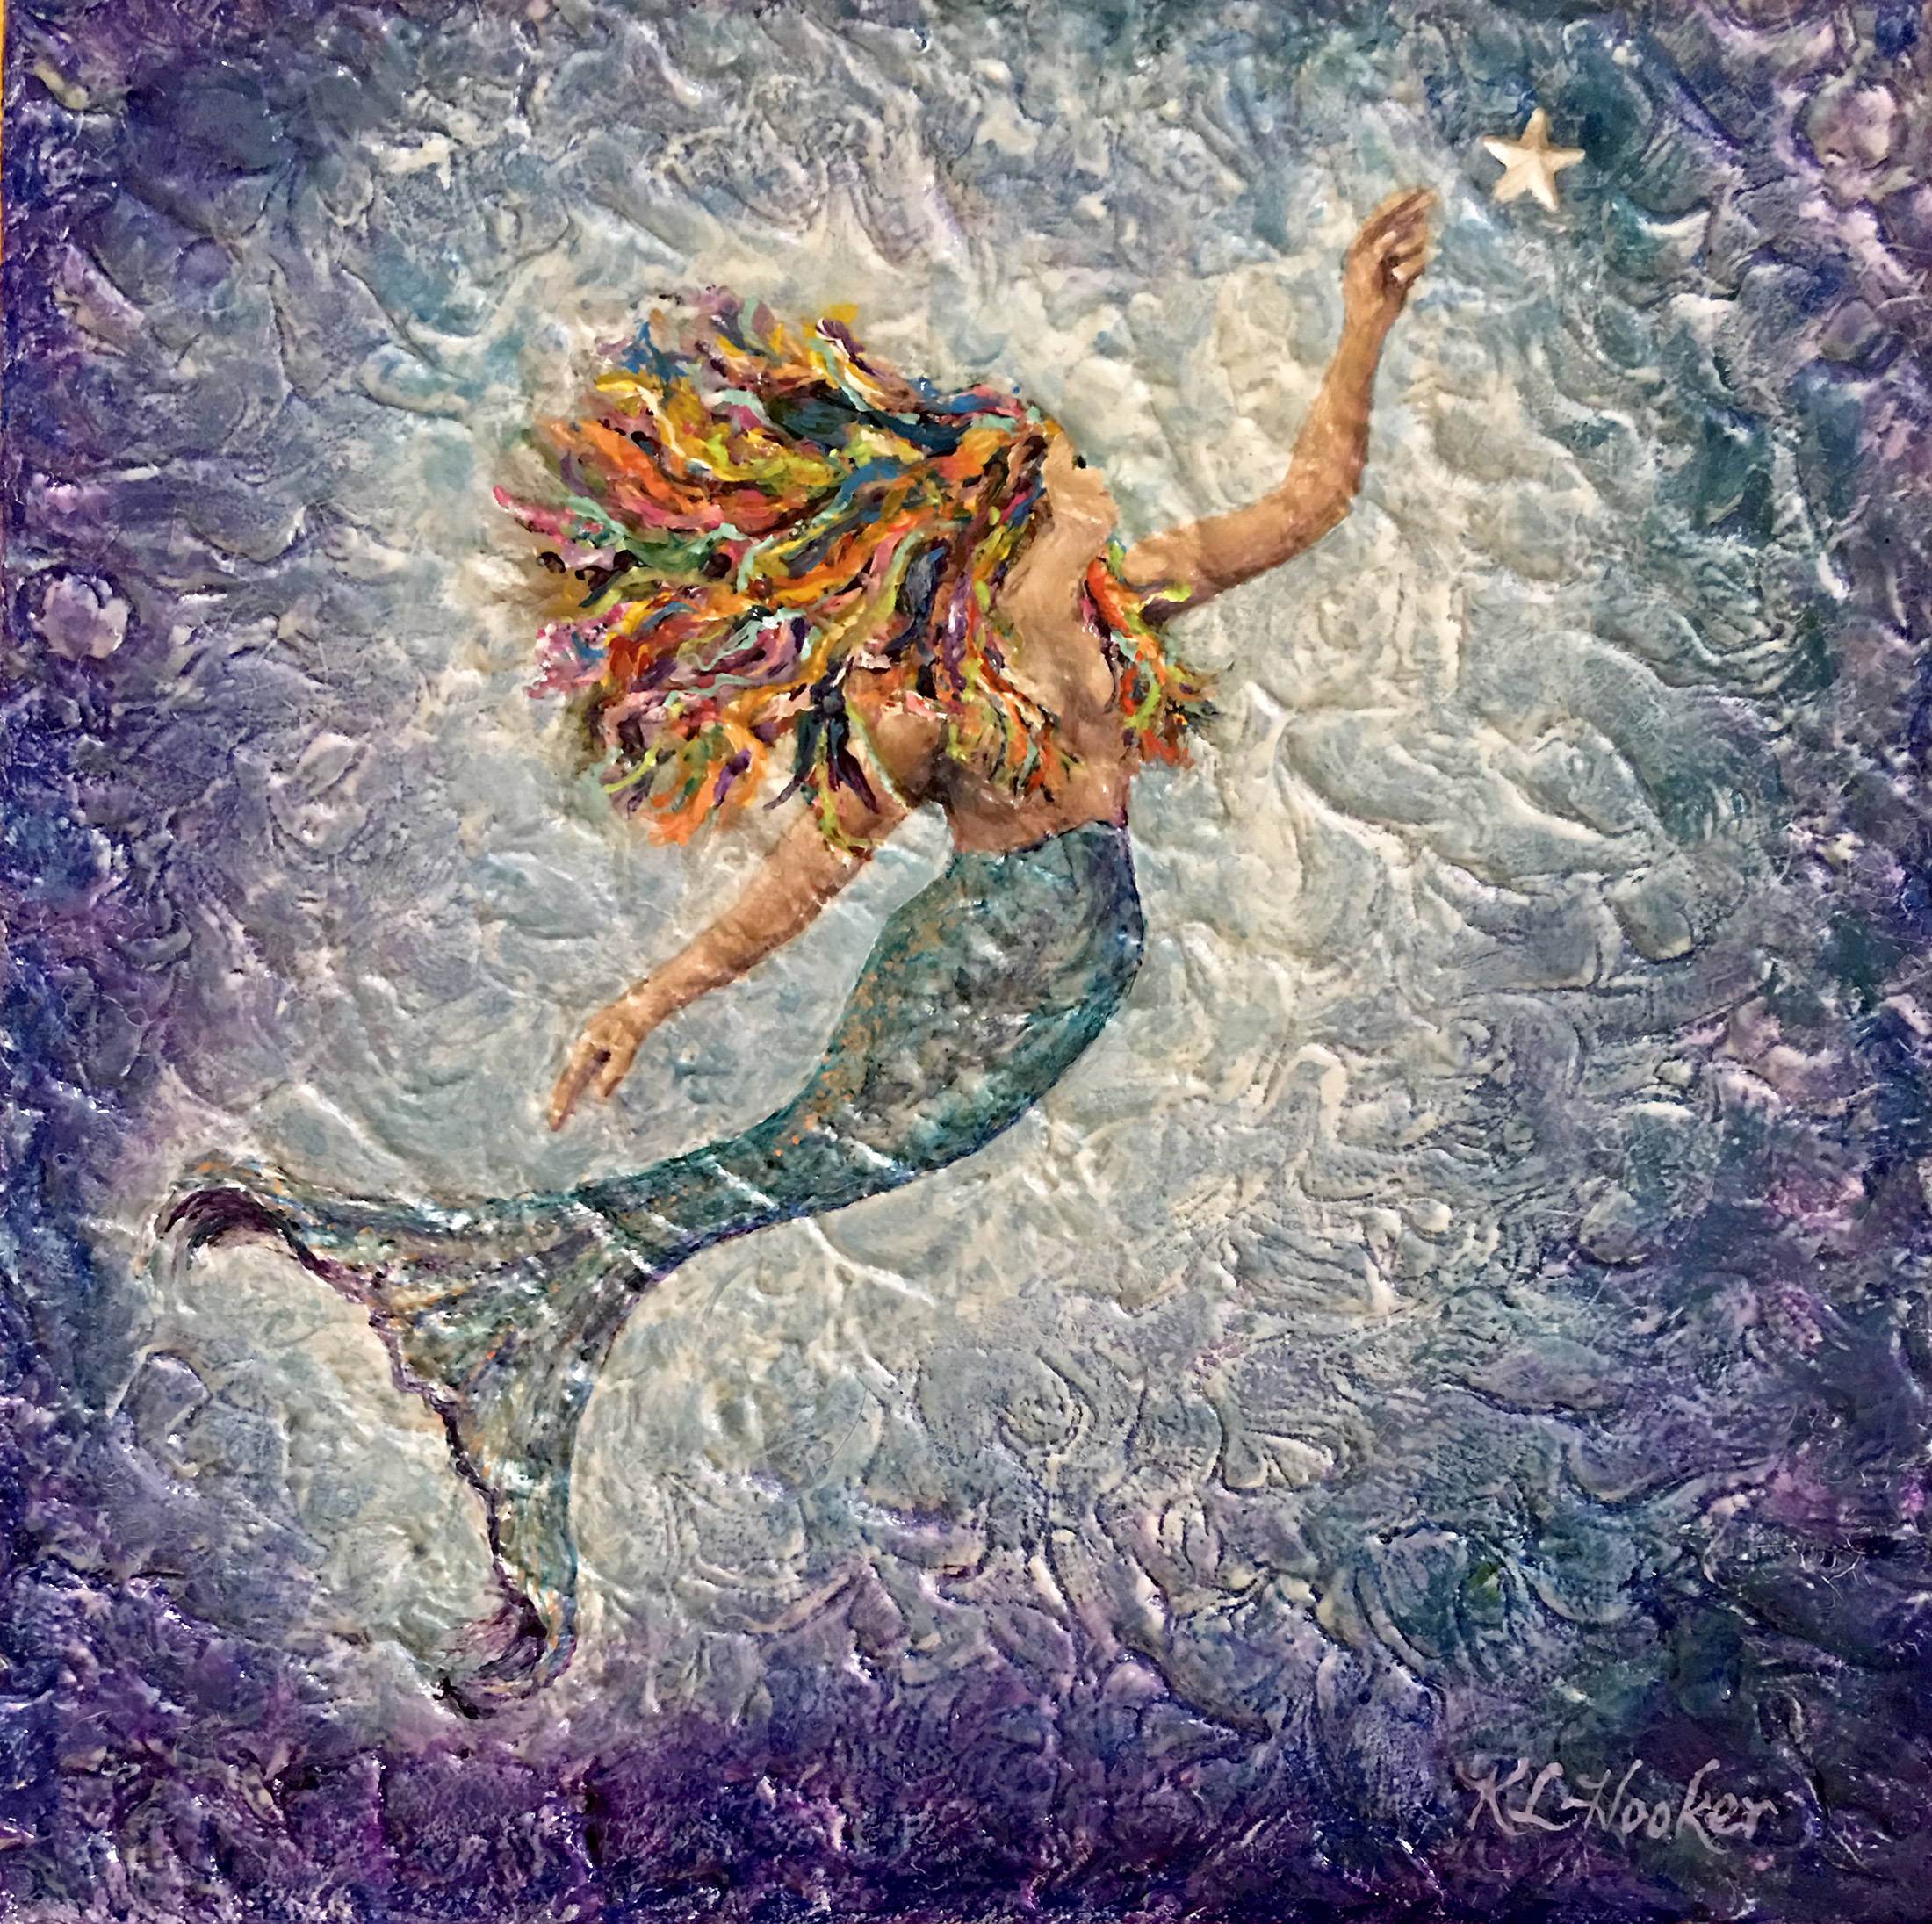 Mermaid Reaching